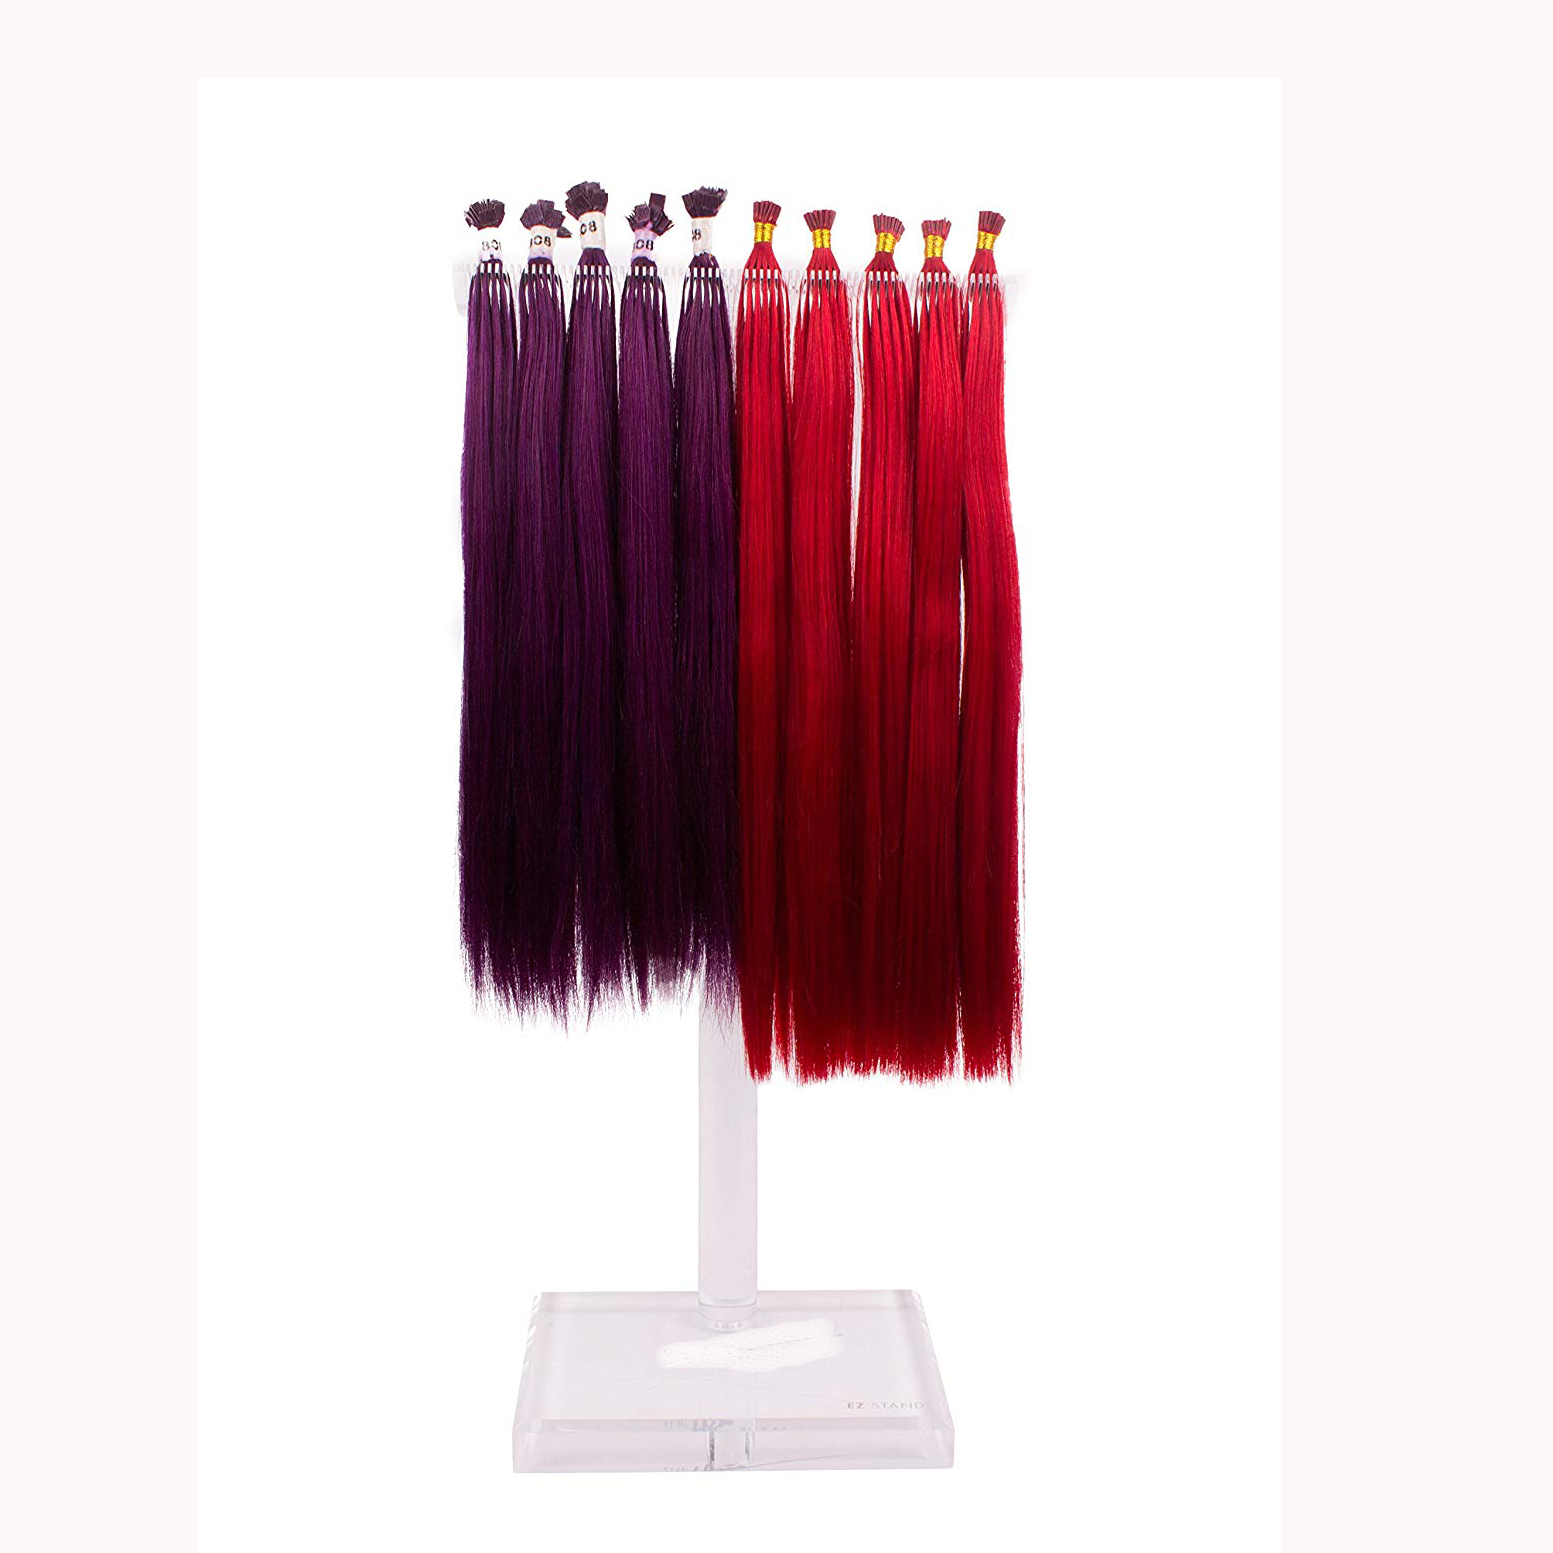 VONVIK Hot New Products Hair Extension Display Shelf Hair Extensions Wall Display Hair Extension Display Stand